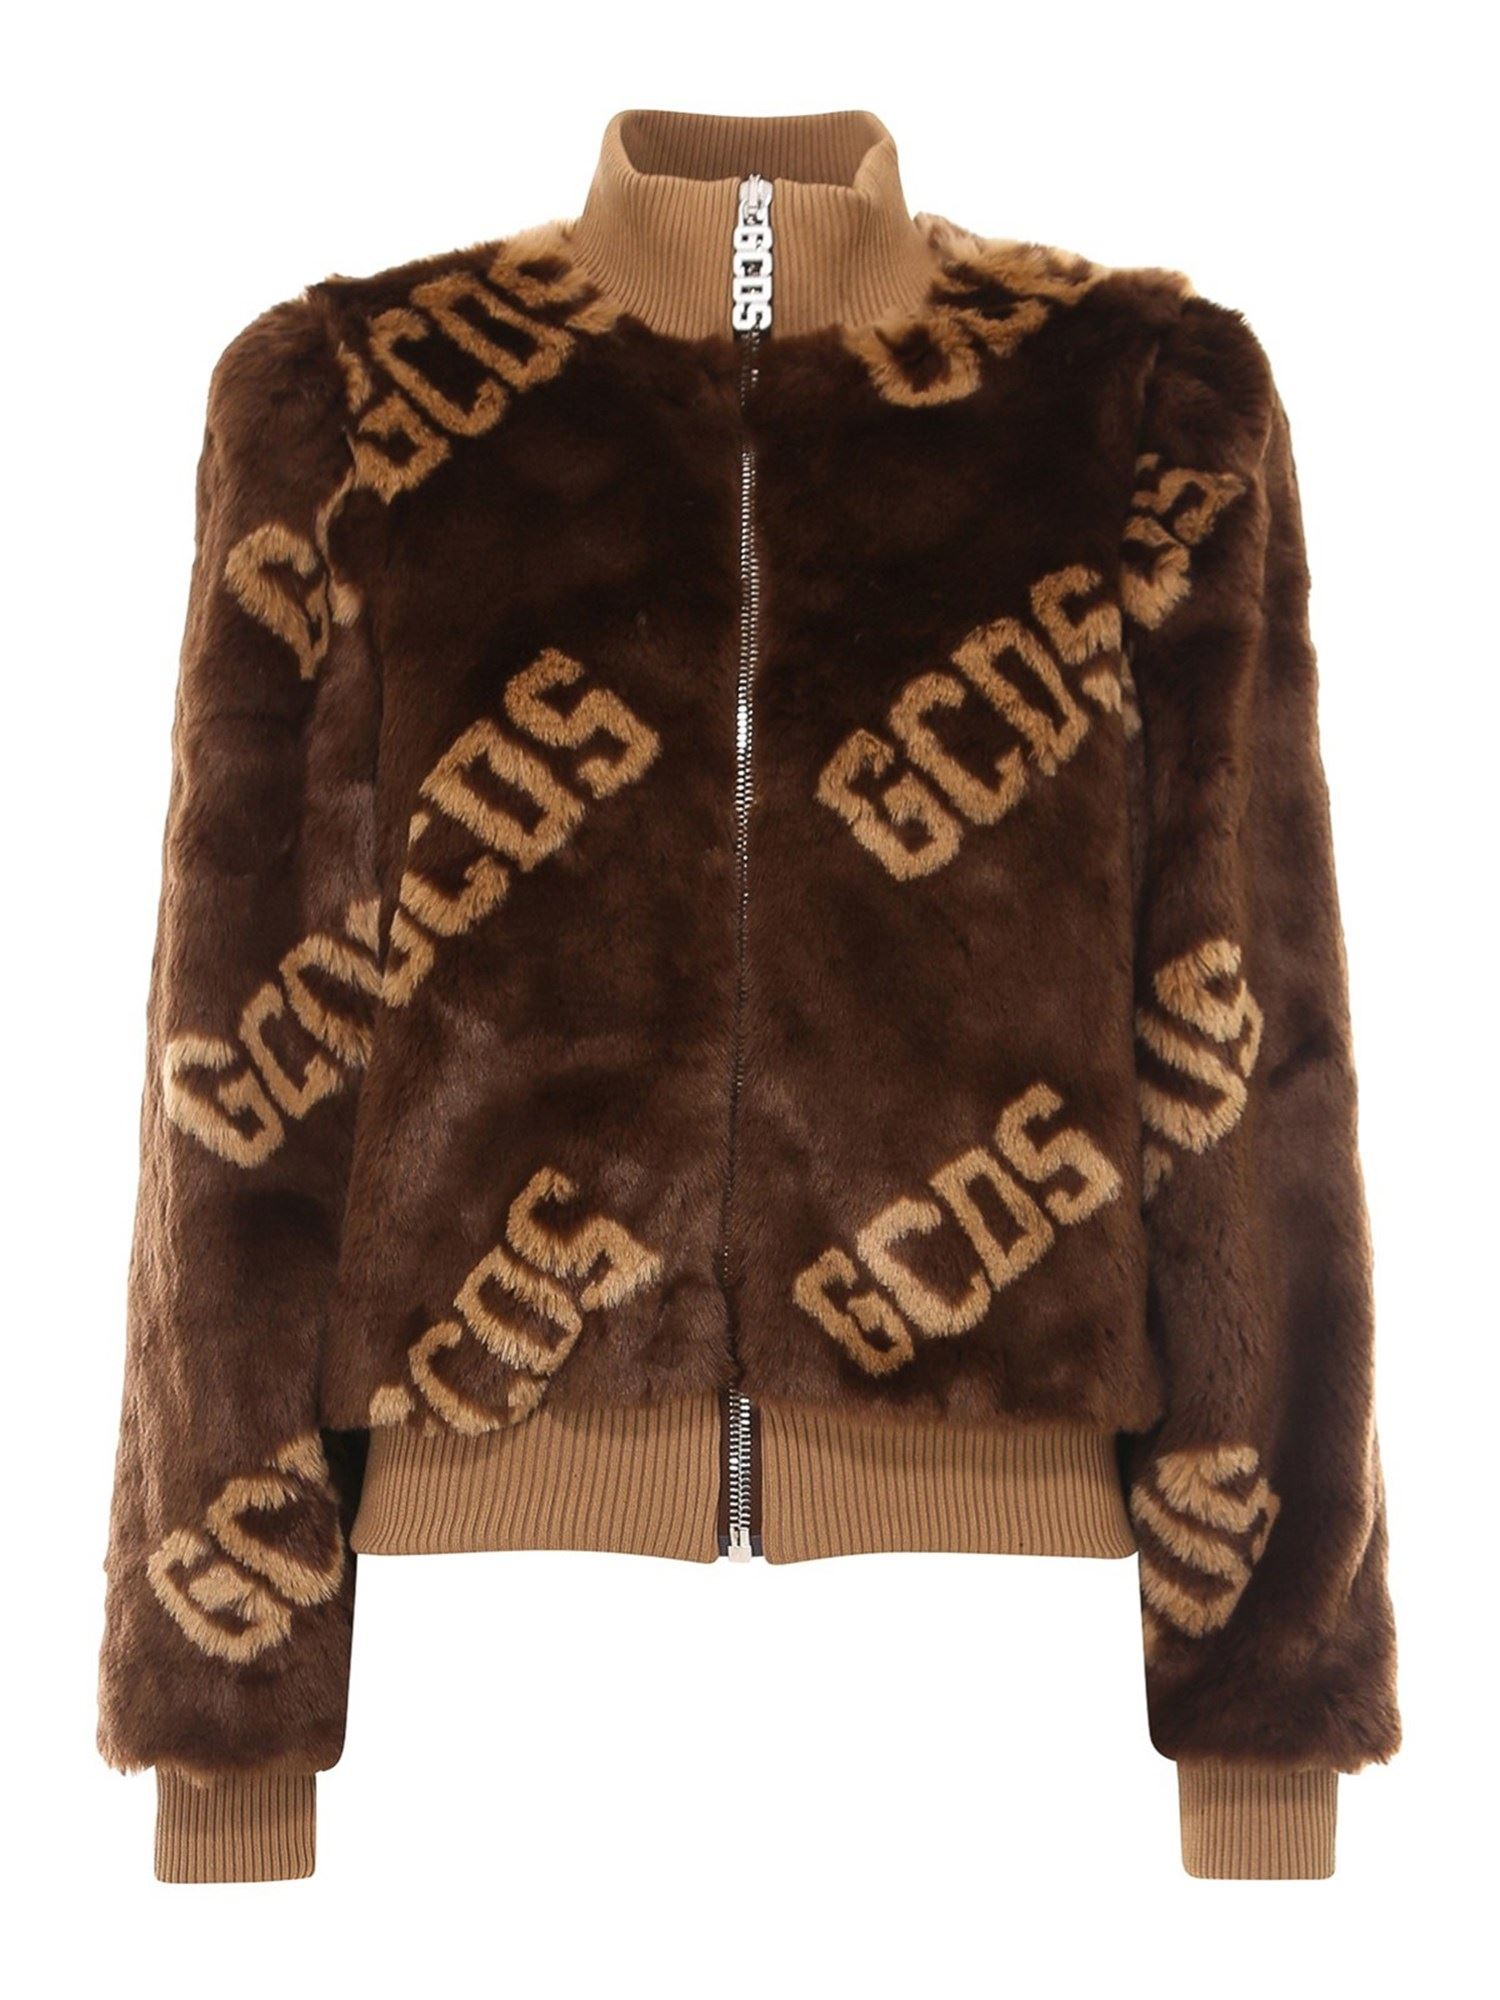 GCDS ALL OVER LOGO FAUX FUR JACKET